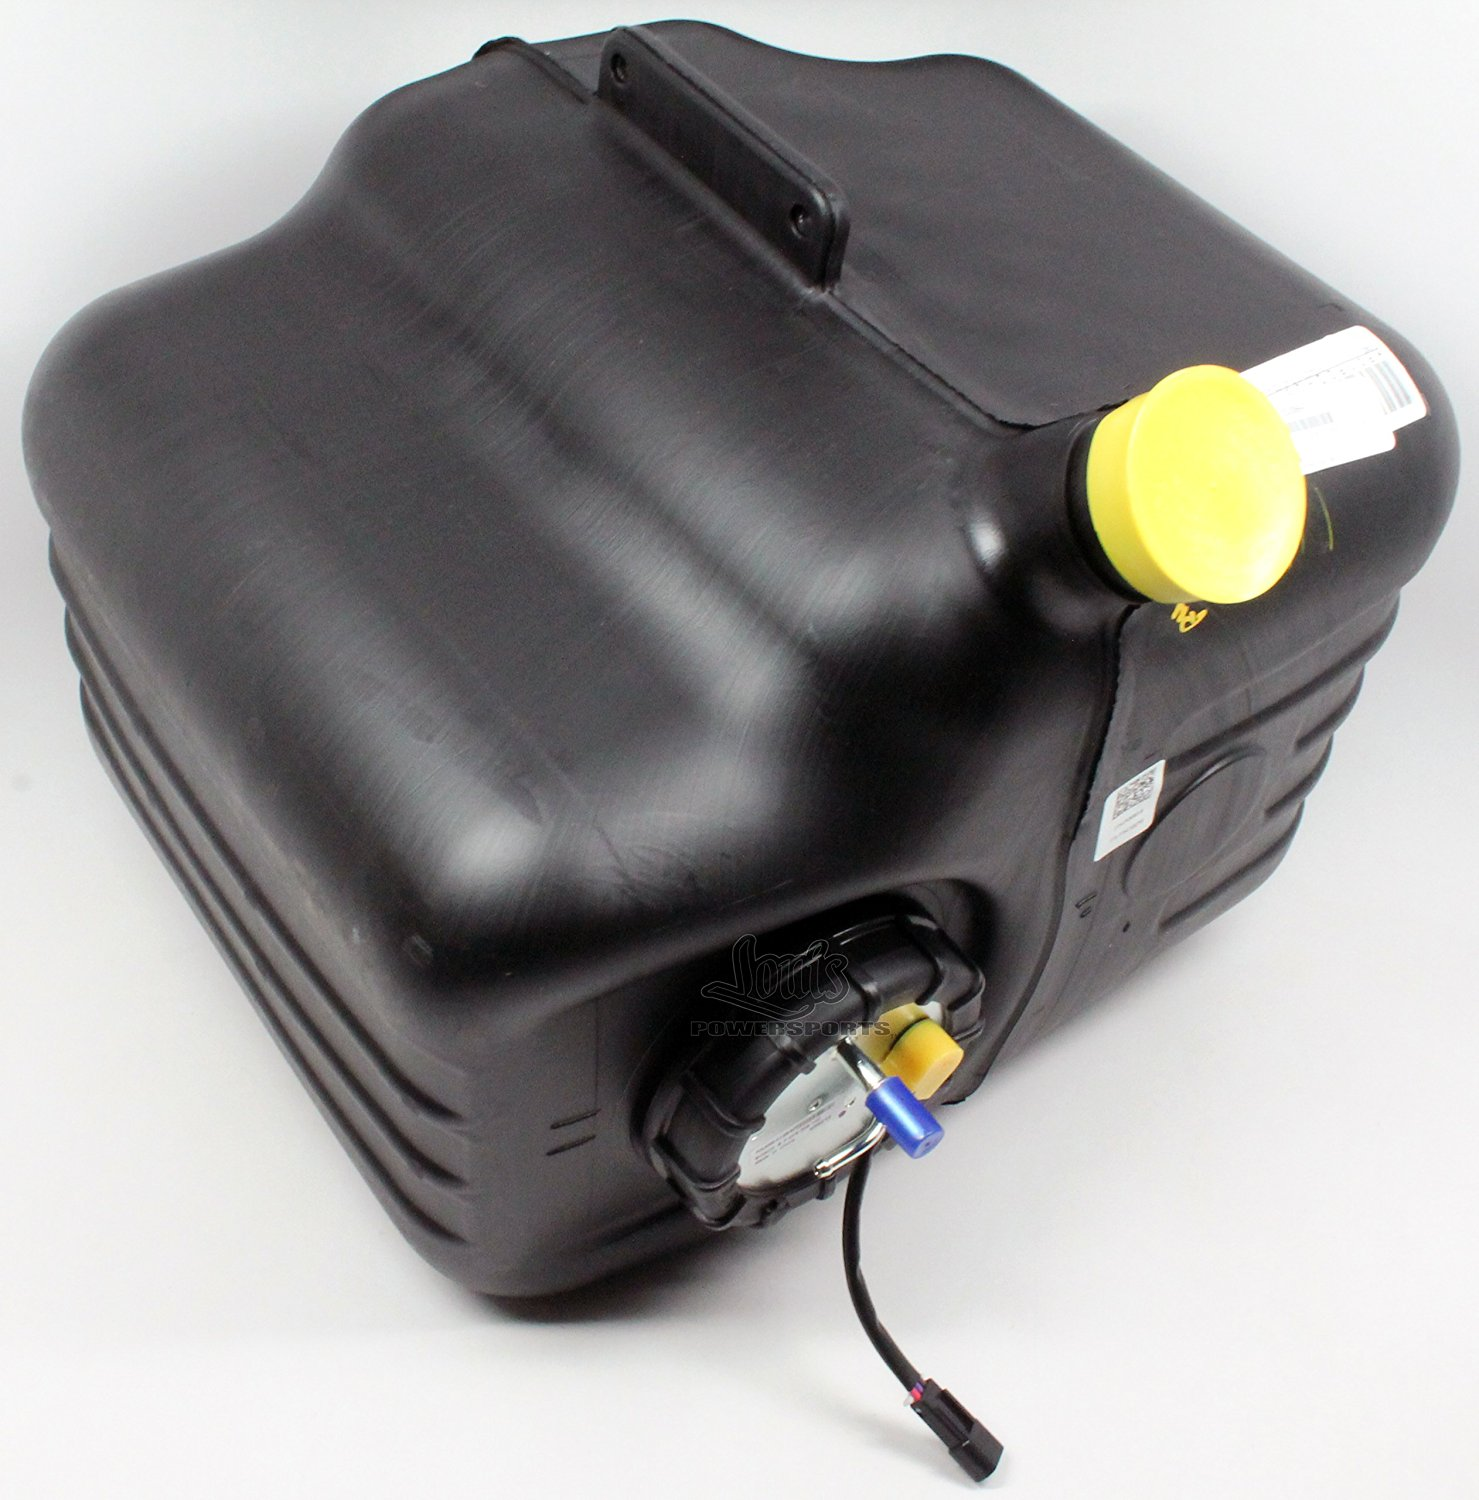 hight resolution of get quotations polaris ranger fuel tank assembly gas efi 700 800 4x4 with fuel pump 2520864 new